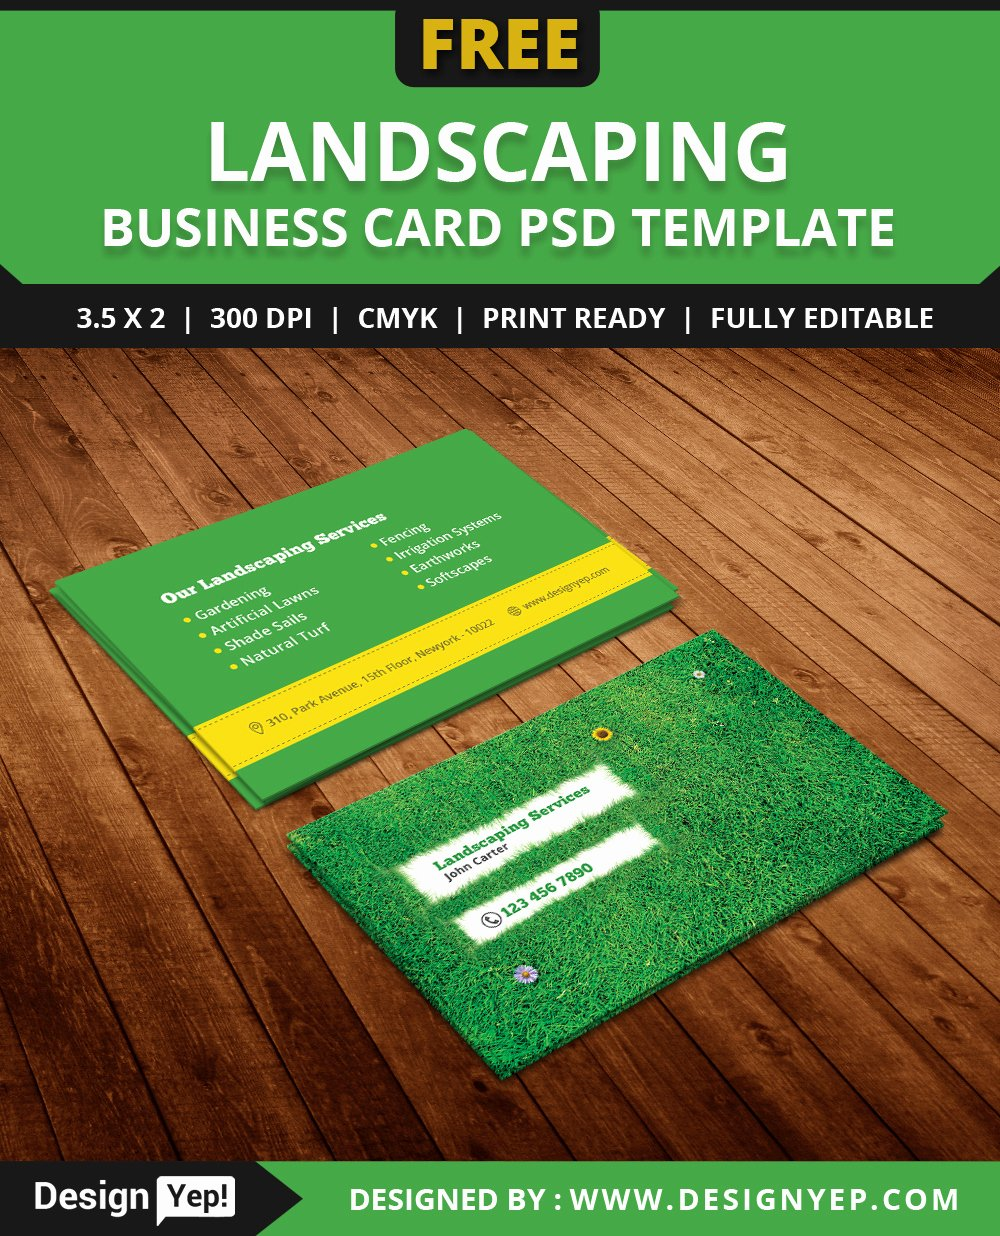 Landscape Business Card Template New Free Landscaping Business Card Template Psd On Behance